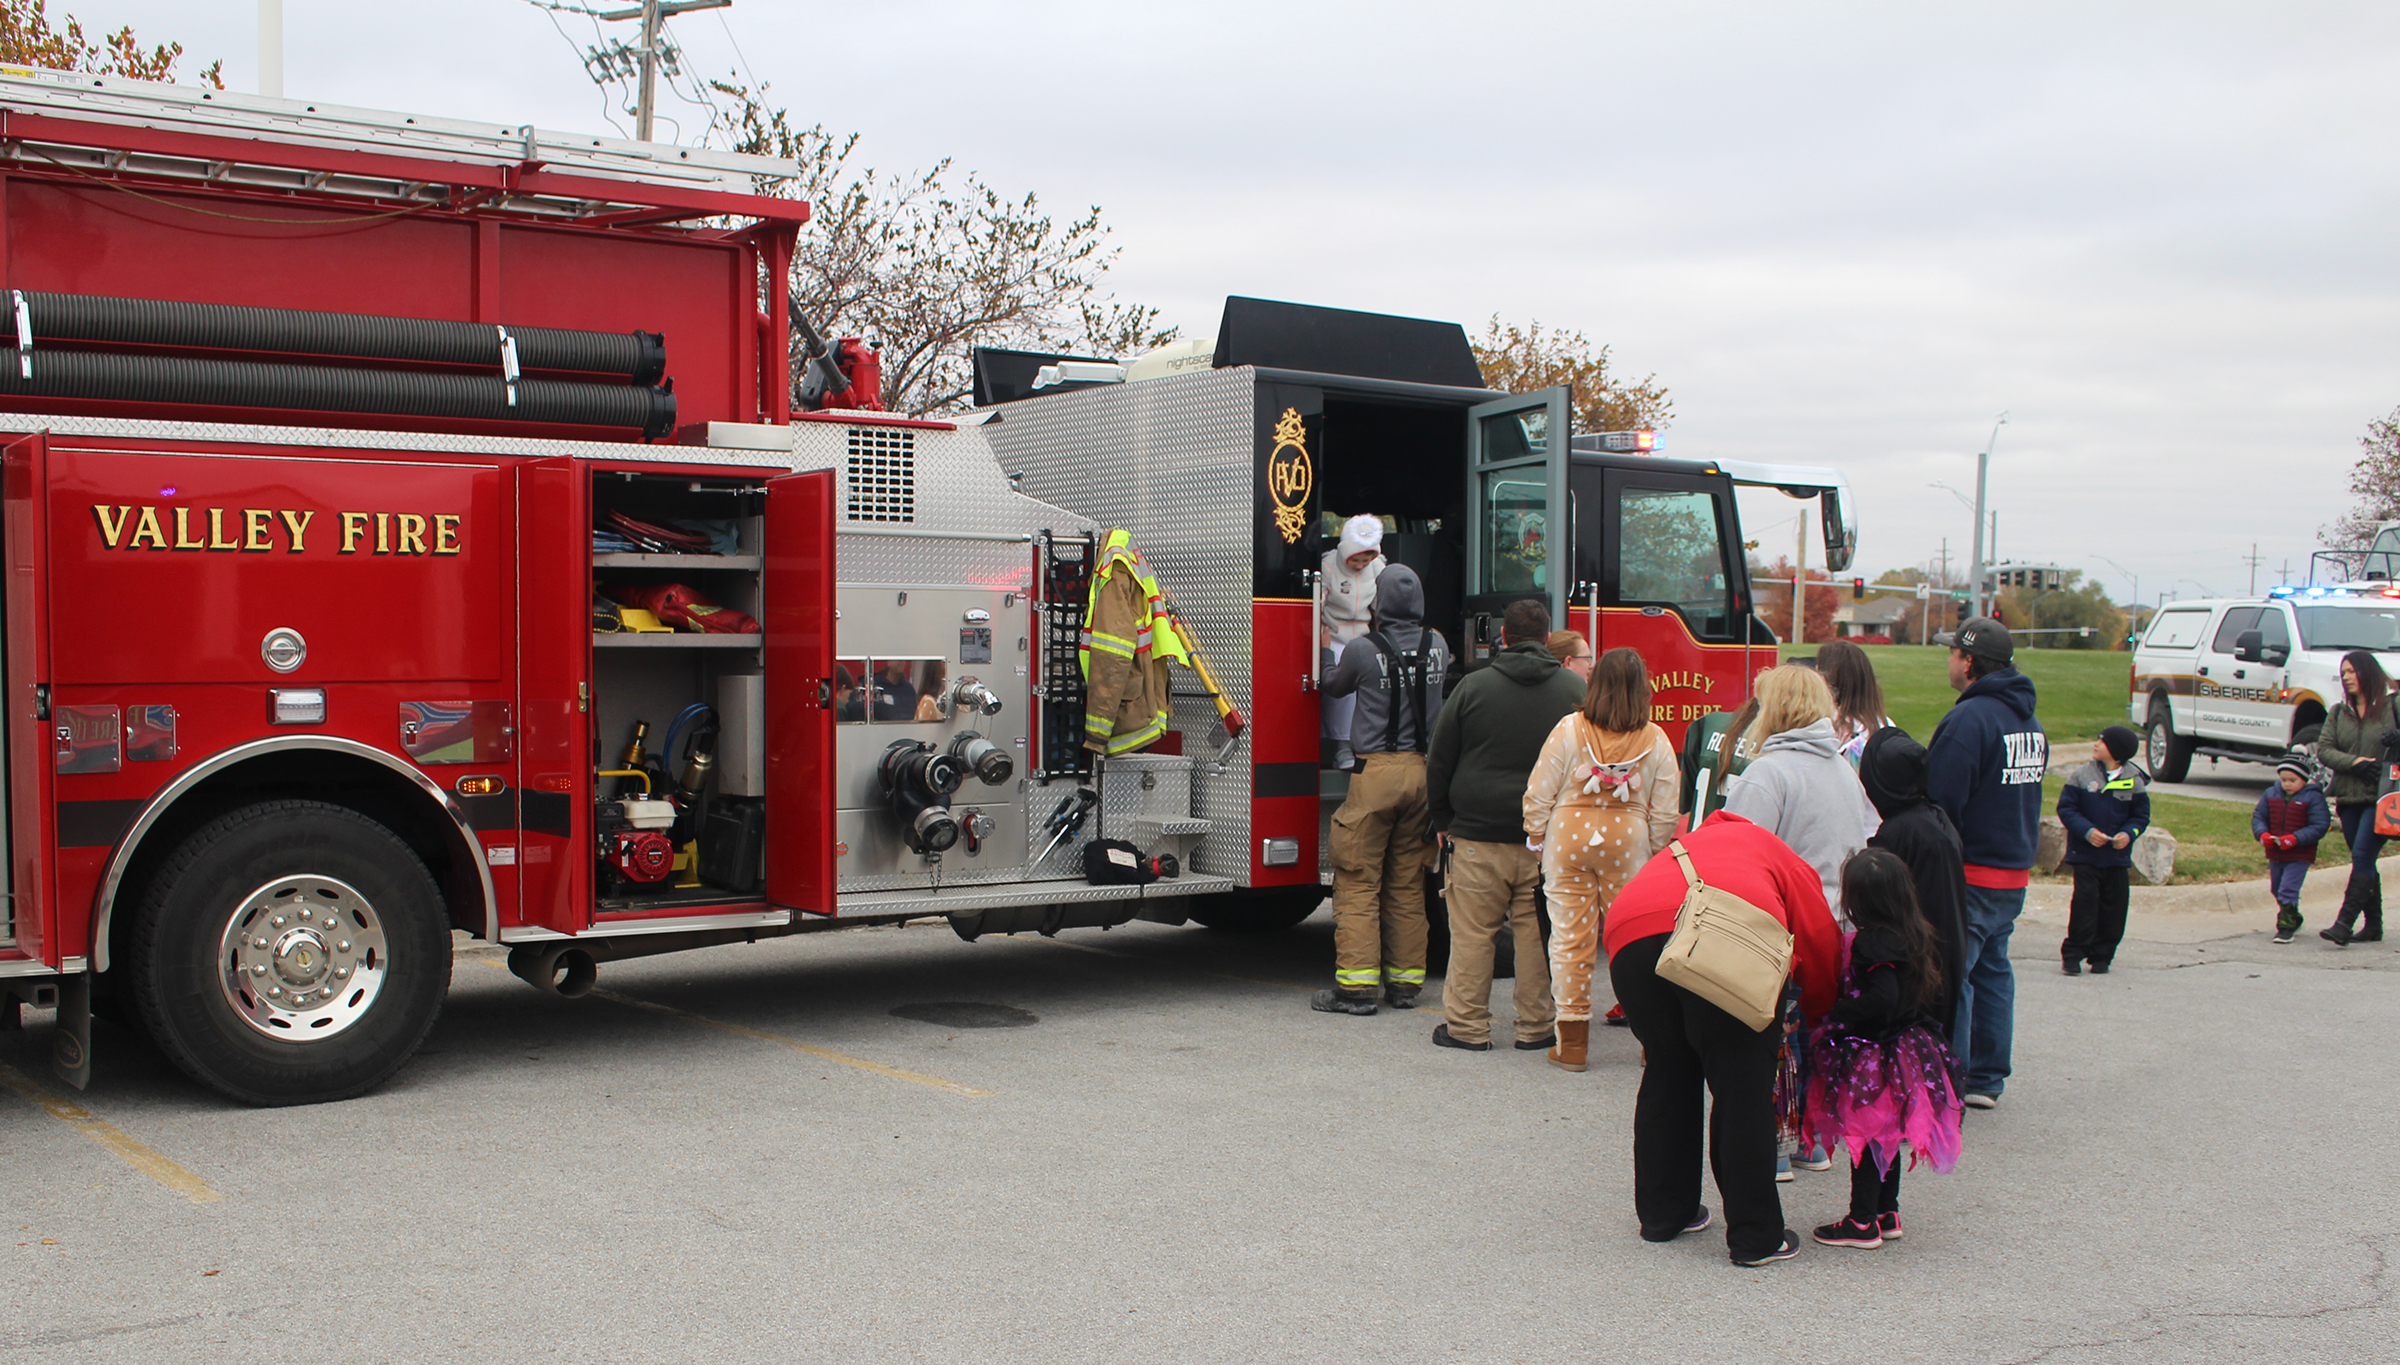 Families line up to trick-or-treat at a Valley Fire Department engine on Saturday, Oct. 27, 2019. (Photo by Scott Stewart)